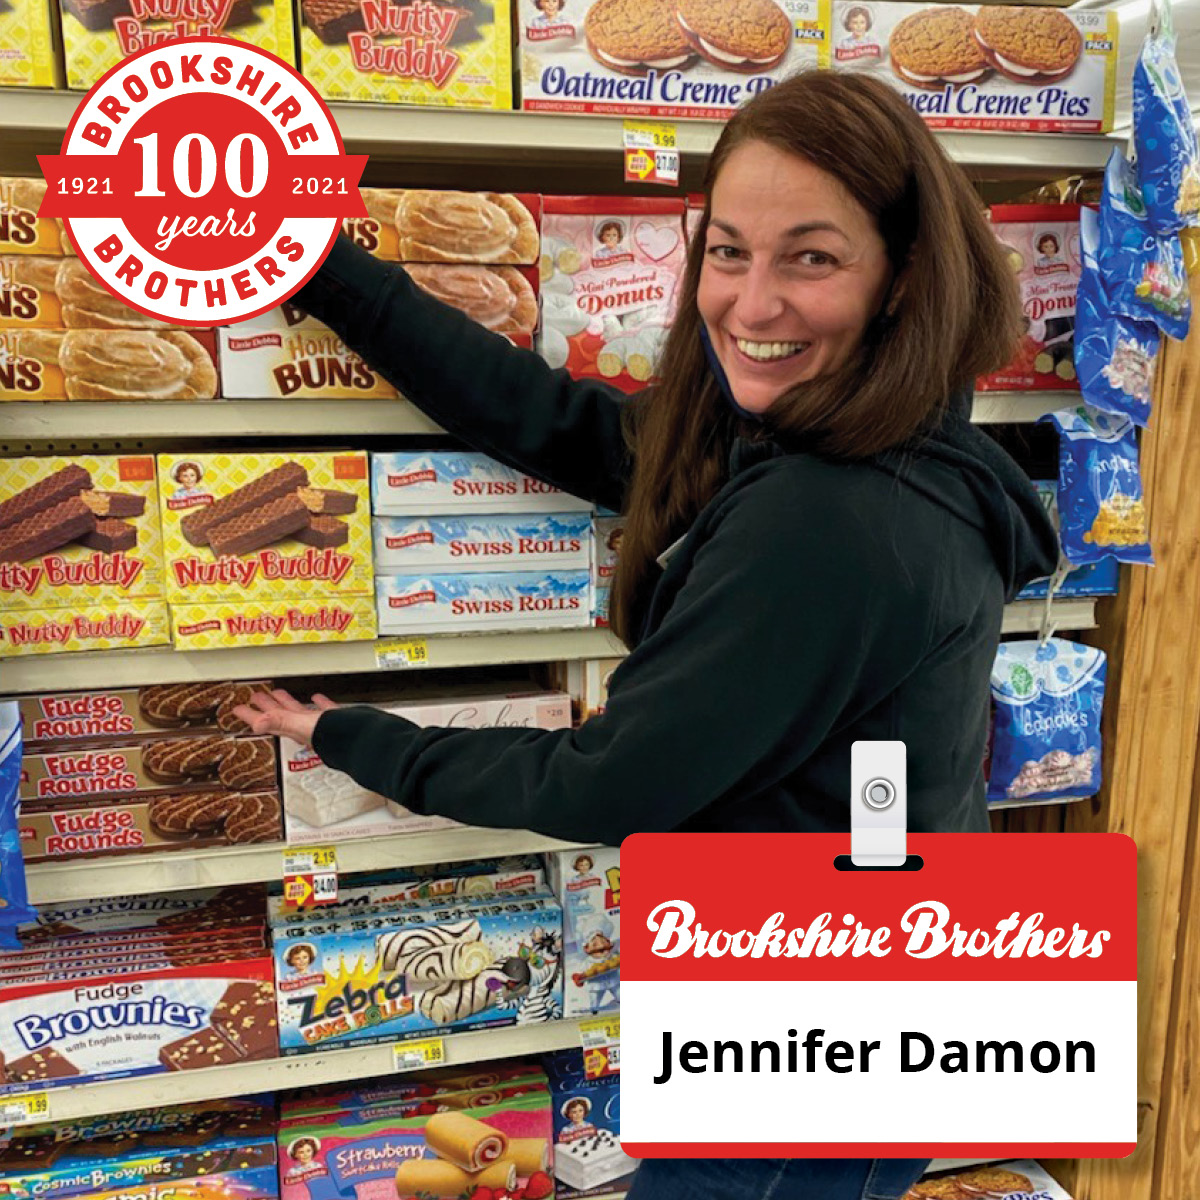 Office Clerk Jennifer Damon comes in every day with the right attitude, said Edgewood, TX Store Director... Read more: brookshirebrothers.com/employee-kudos… #GoodNeverGoesOutOfStyle #Congratulations #ShoutoutSunday #EmployeeRecognition #BBPartner #EmployeeOwned #YourCommunityGrocerSince1921